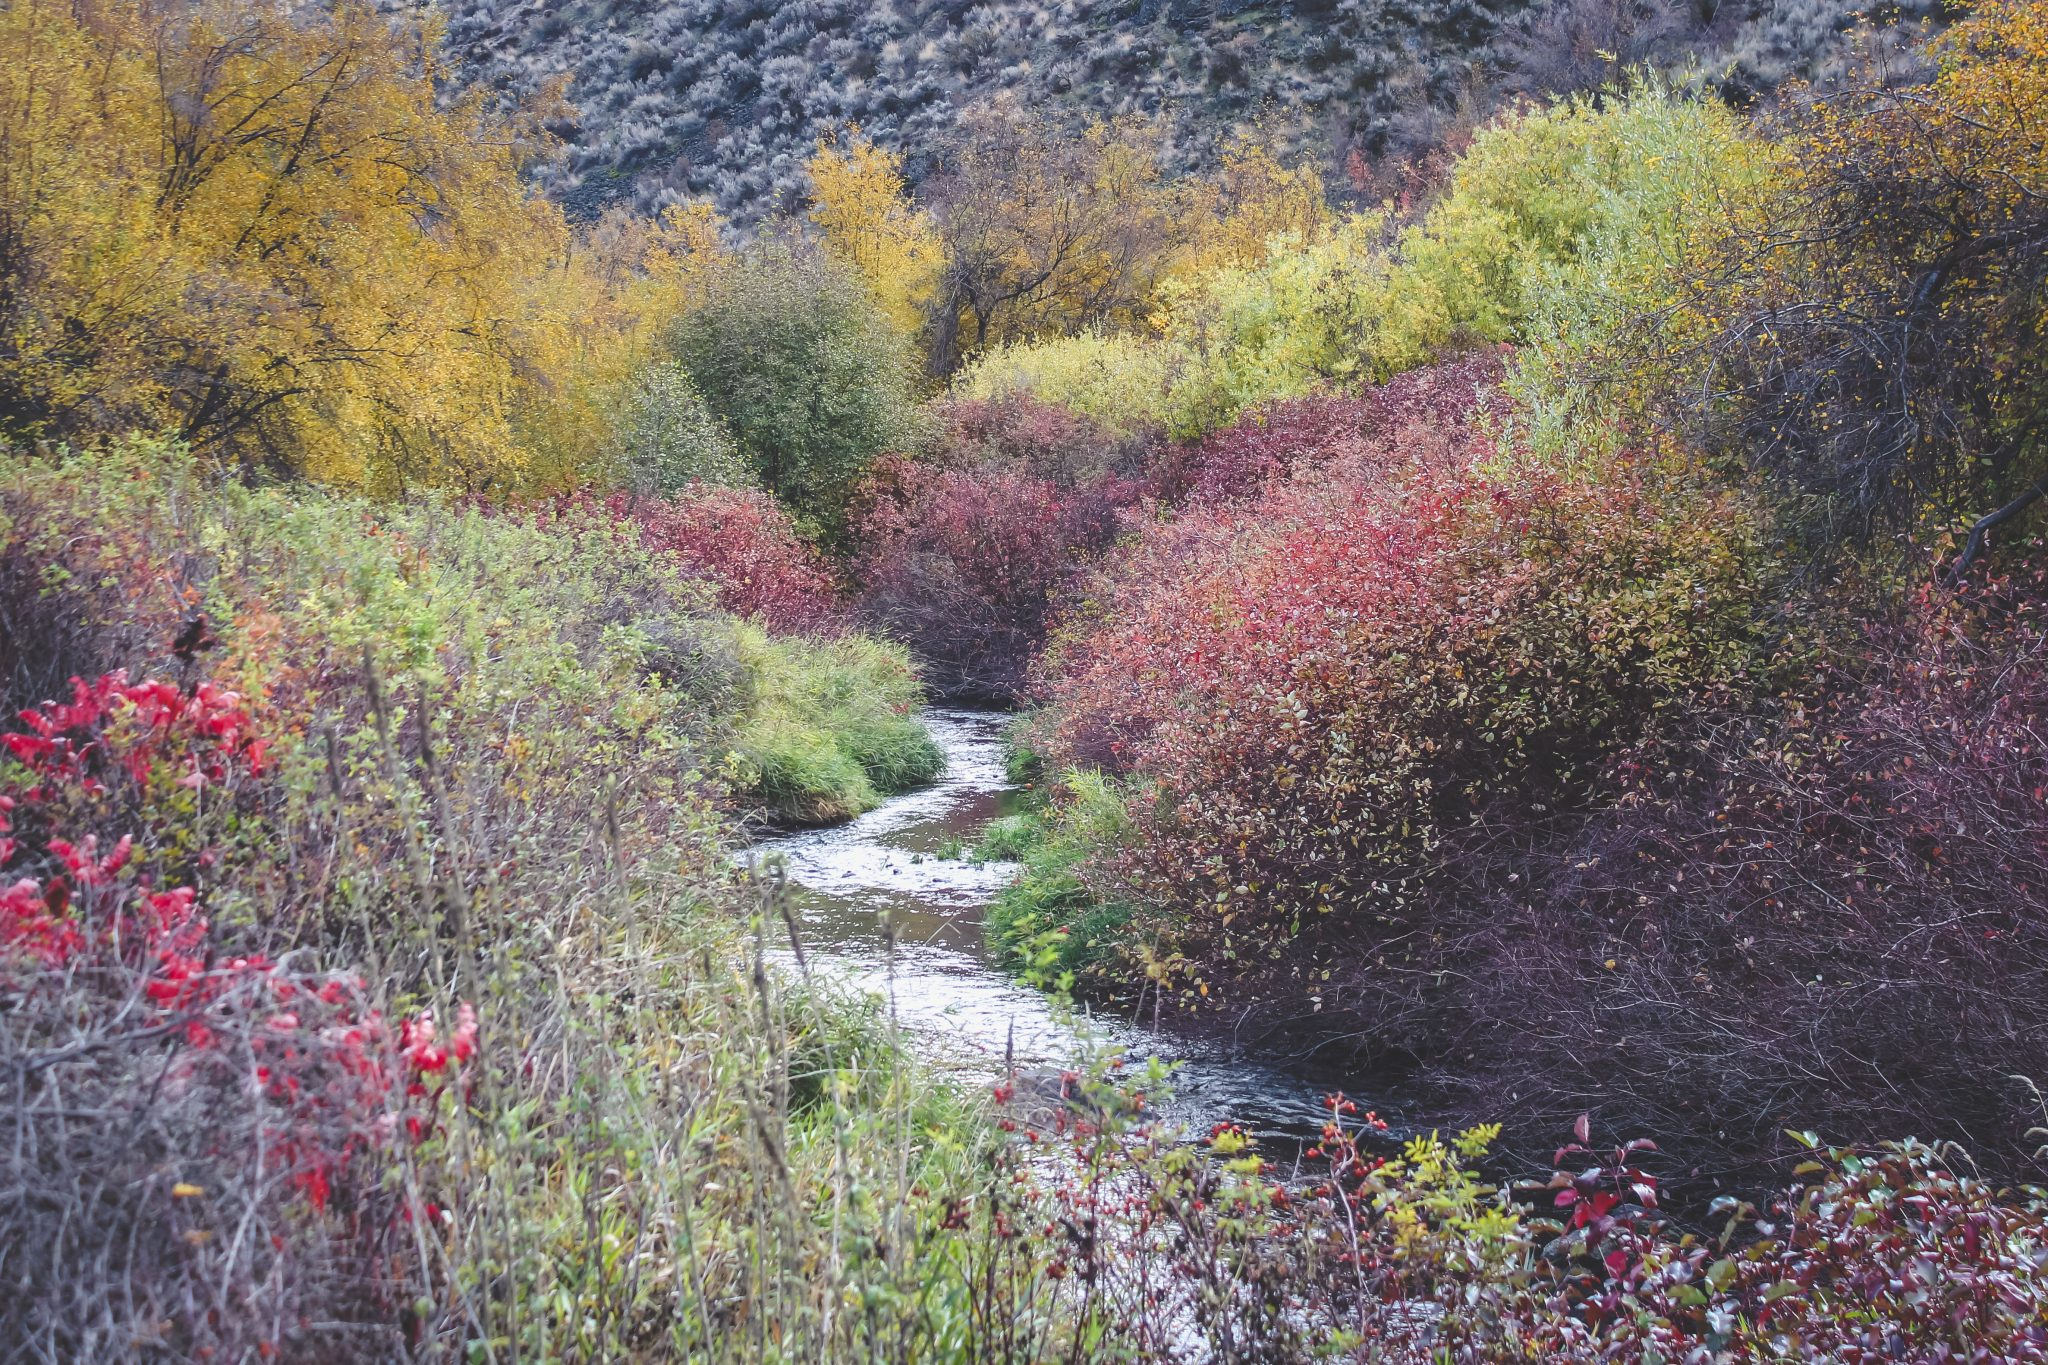 Cowiche Creek in color